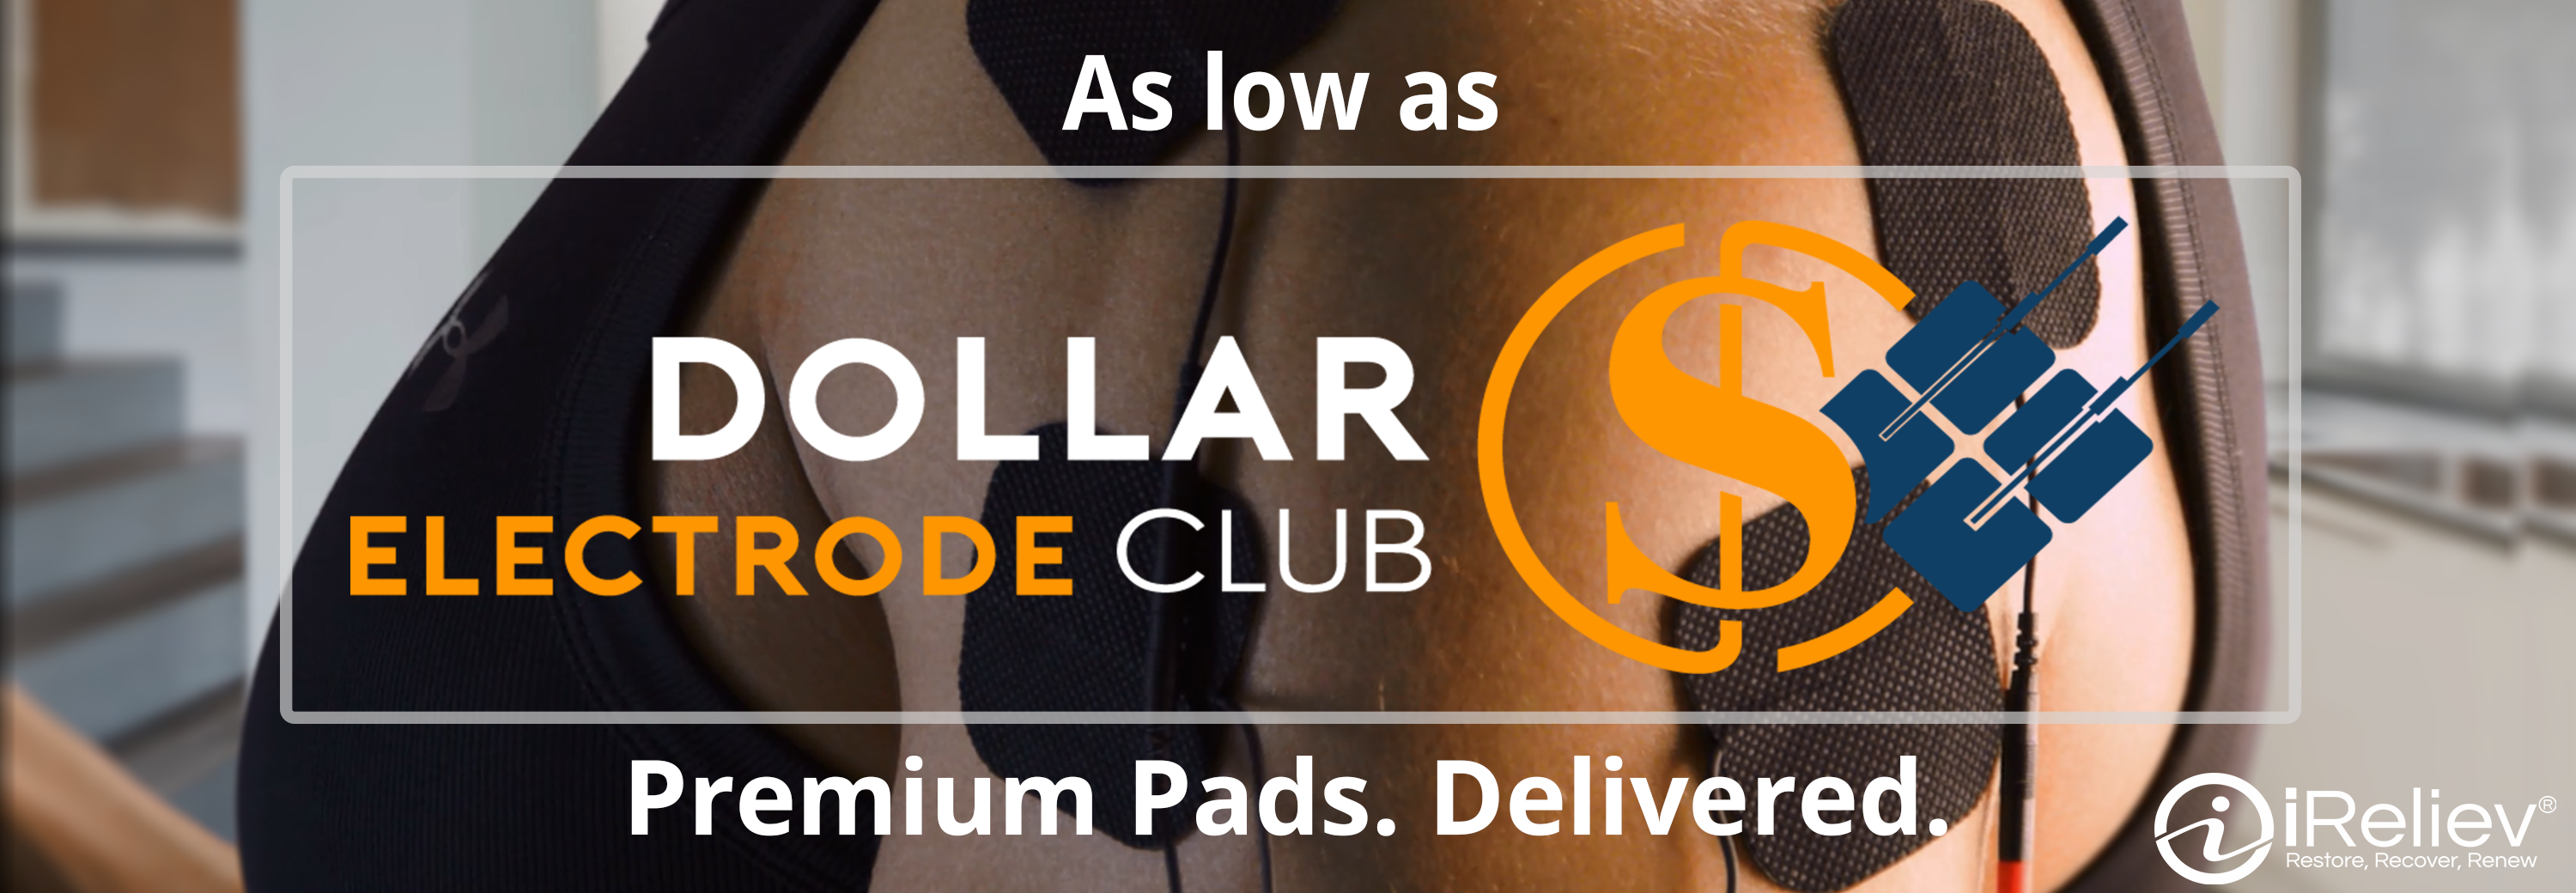 dollar-electrode-club-website-banner